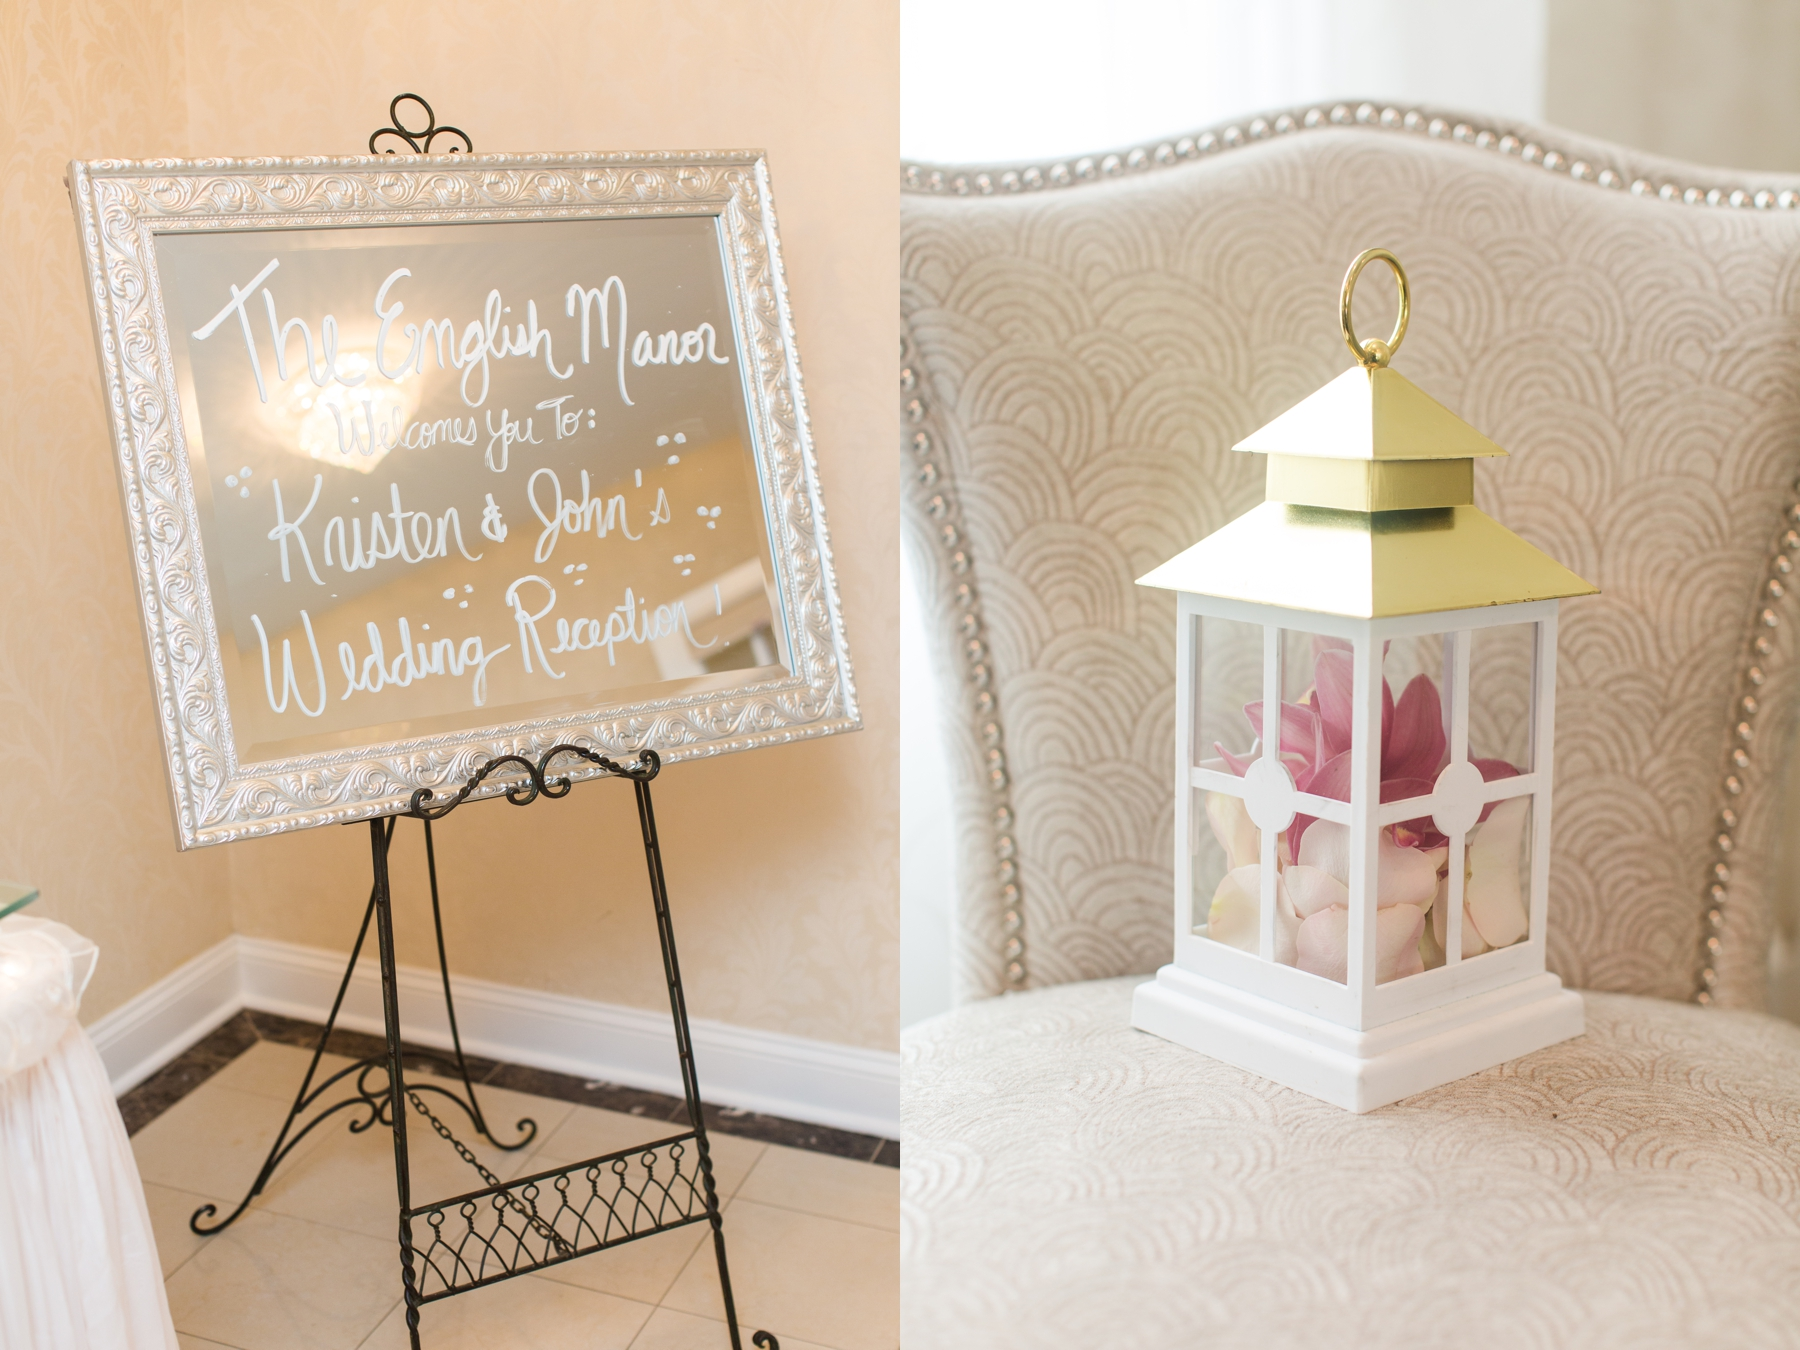 Kristen + John's October Wedding at The English Manor